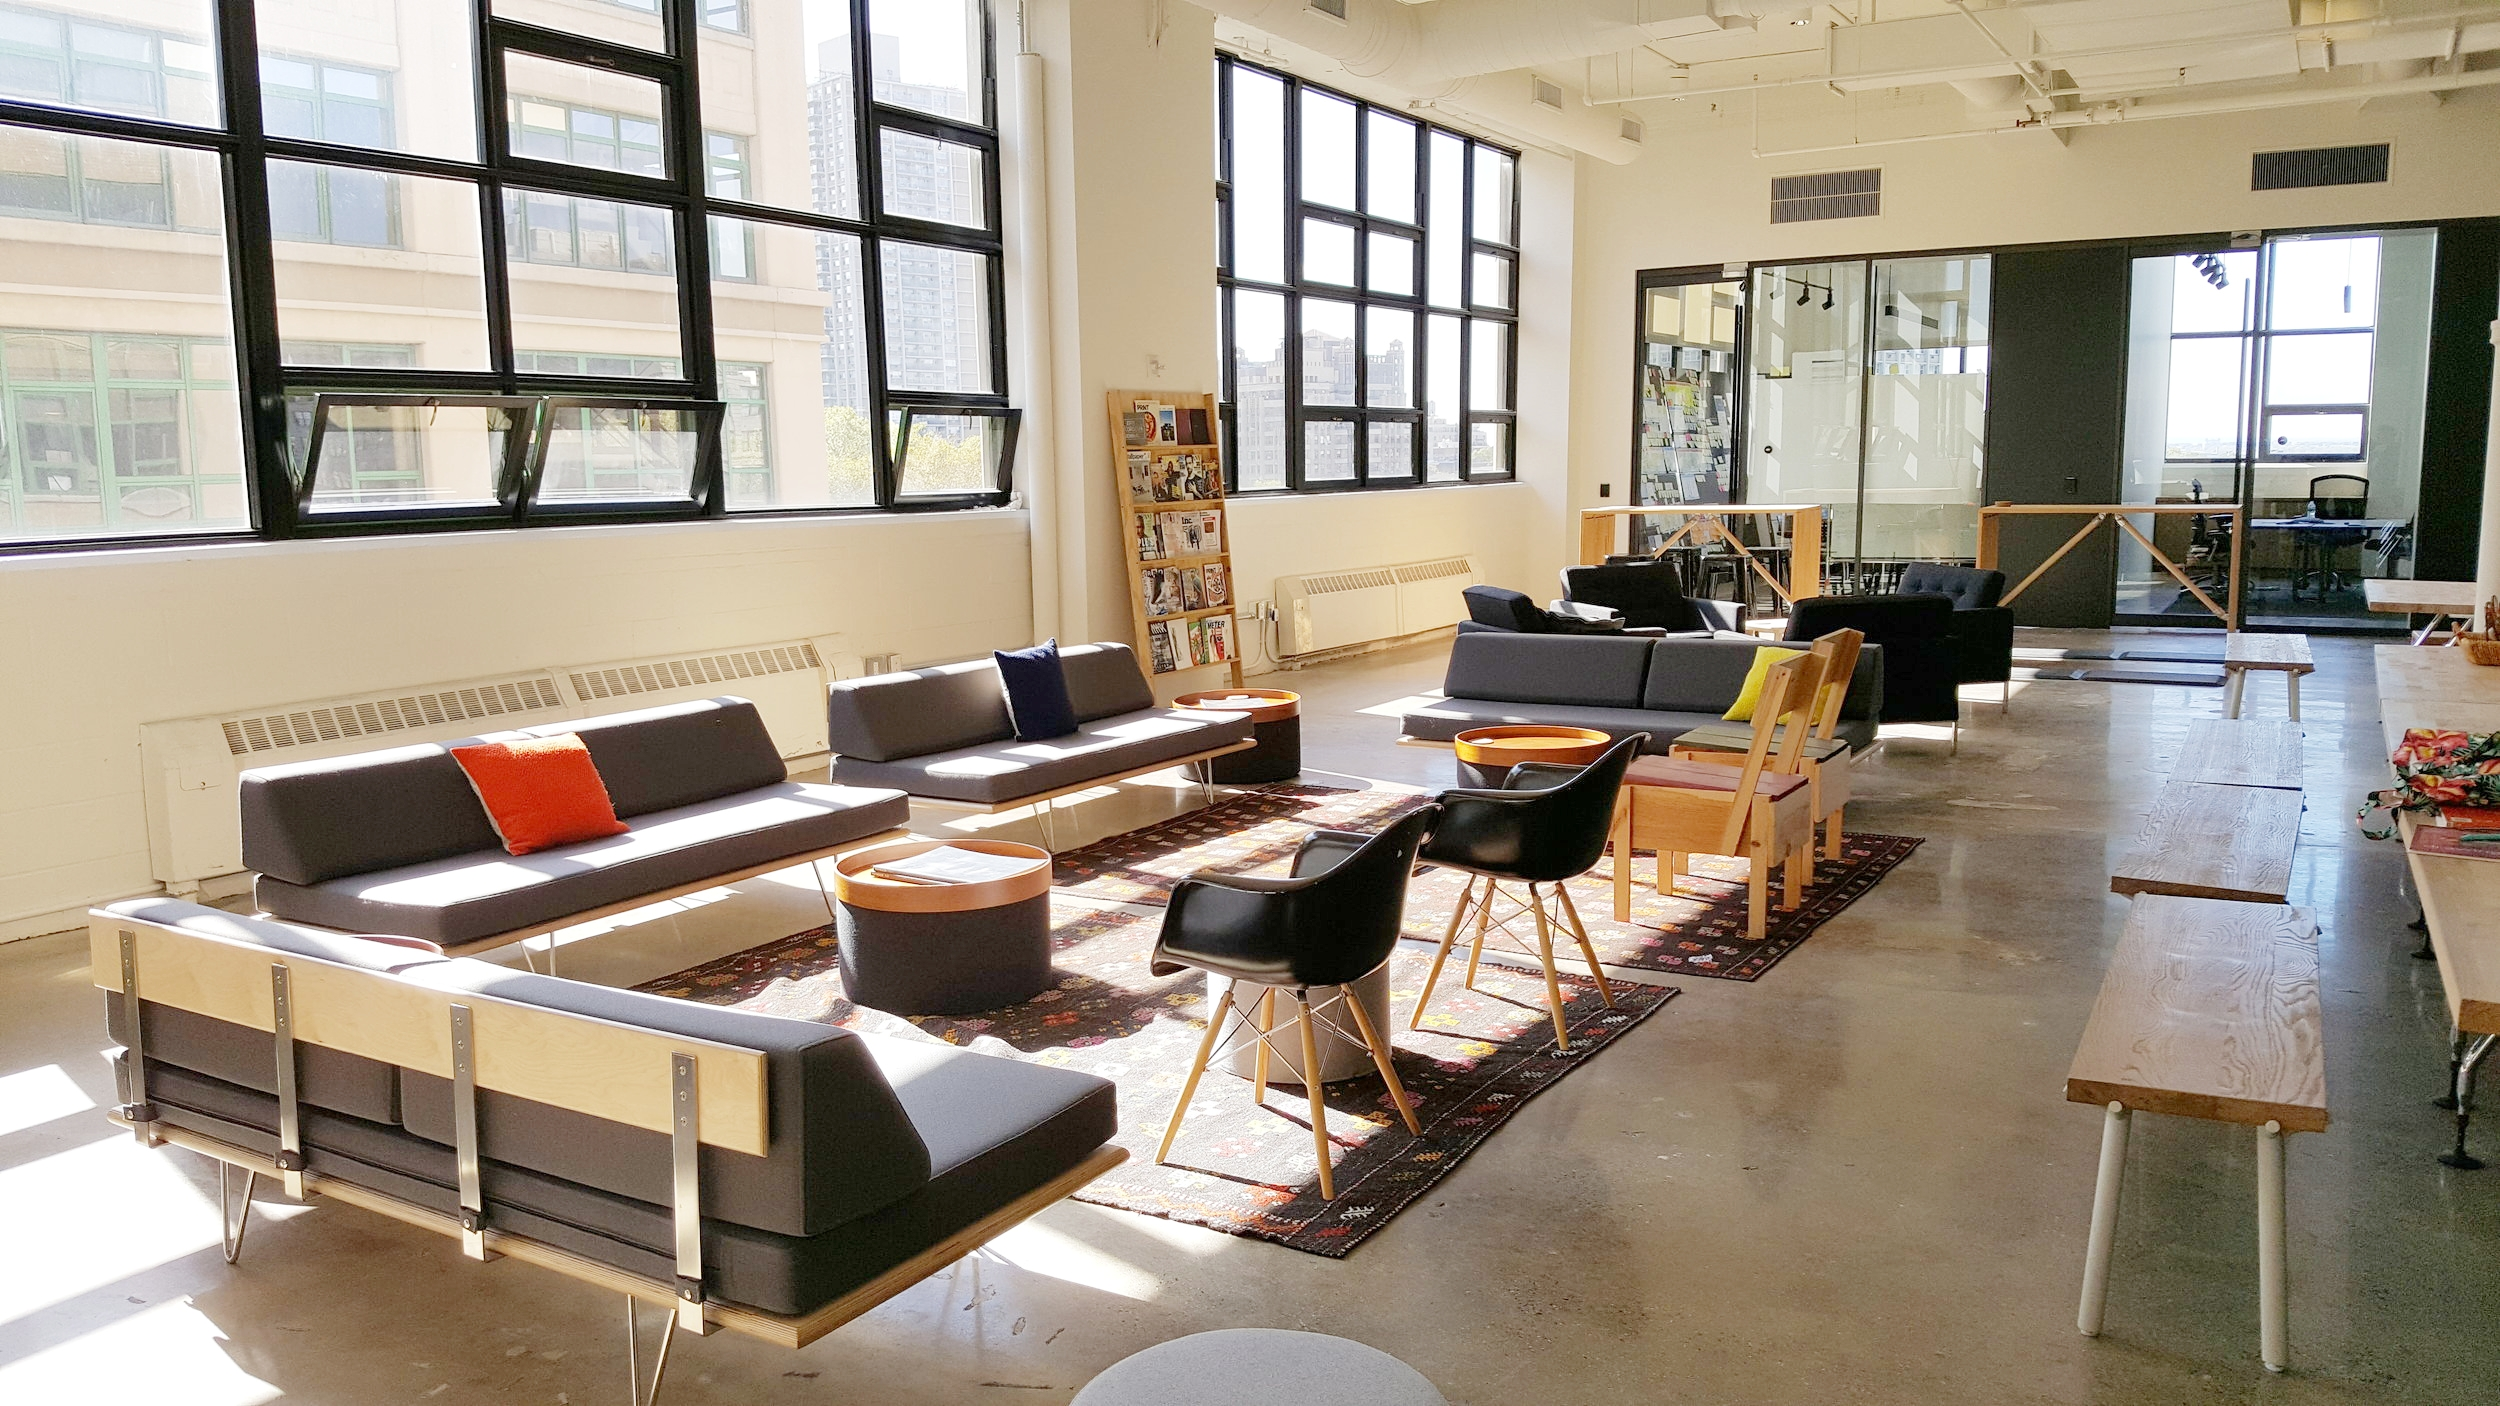 Frog's large open team room is a favorite space to relax or informally collaborate. A wall of windows and a 15.5 foot ceiling fill the space with light and views.